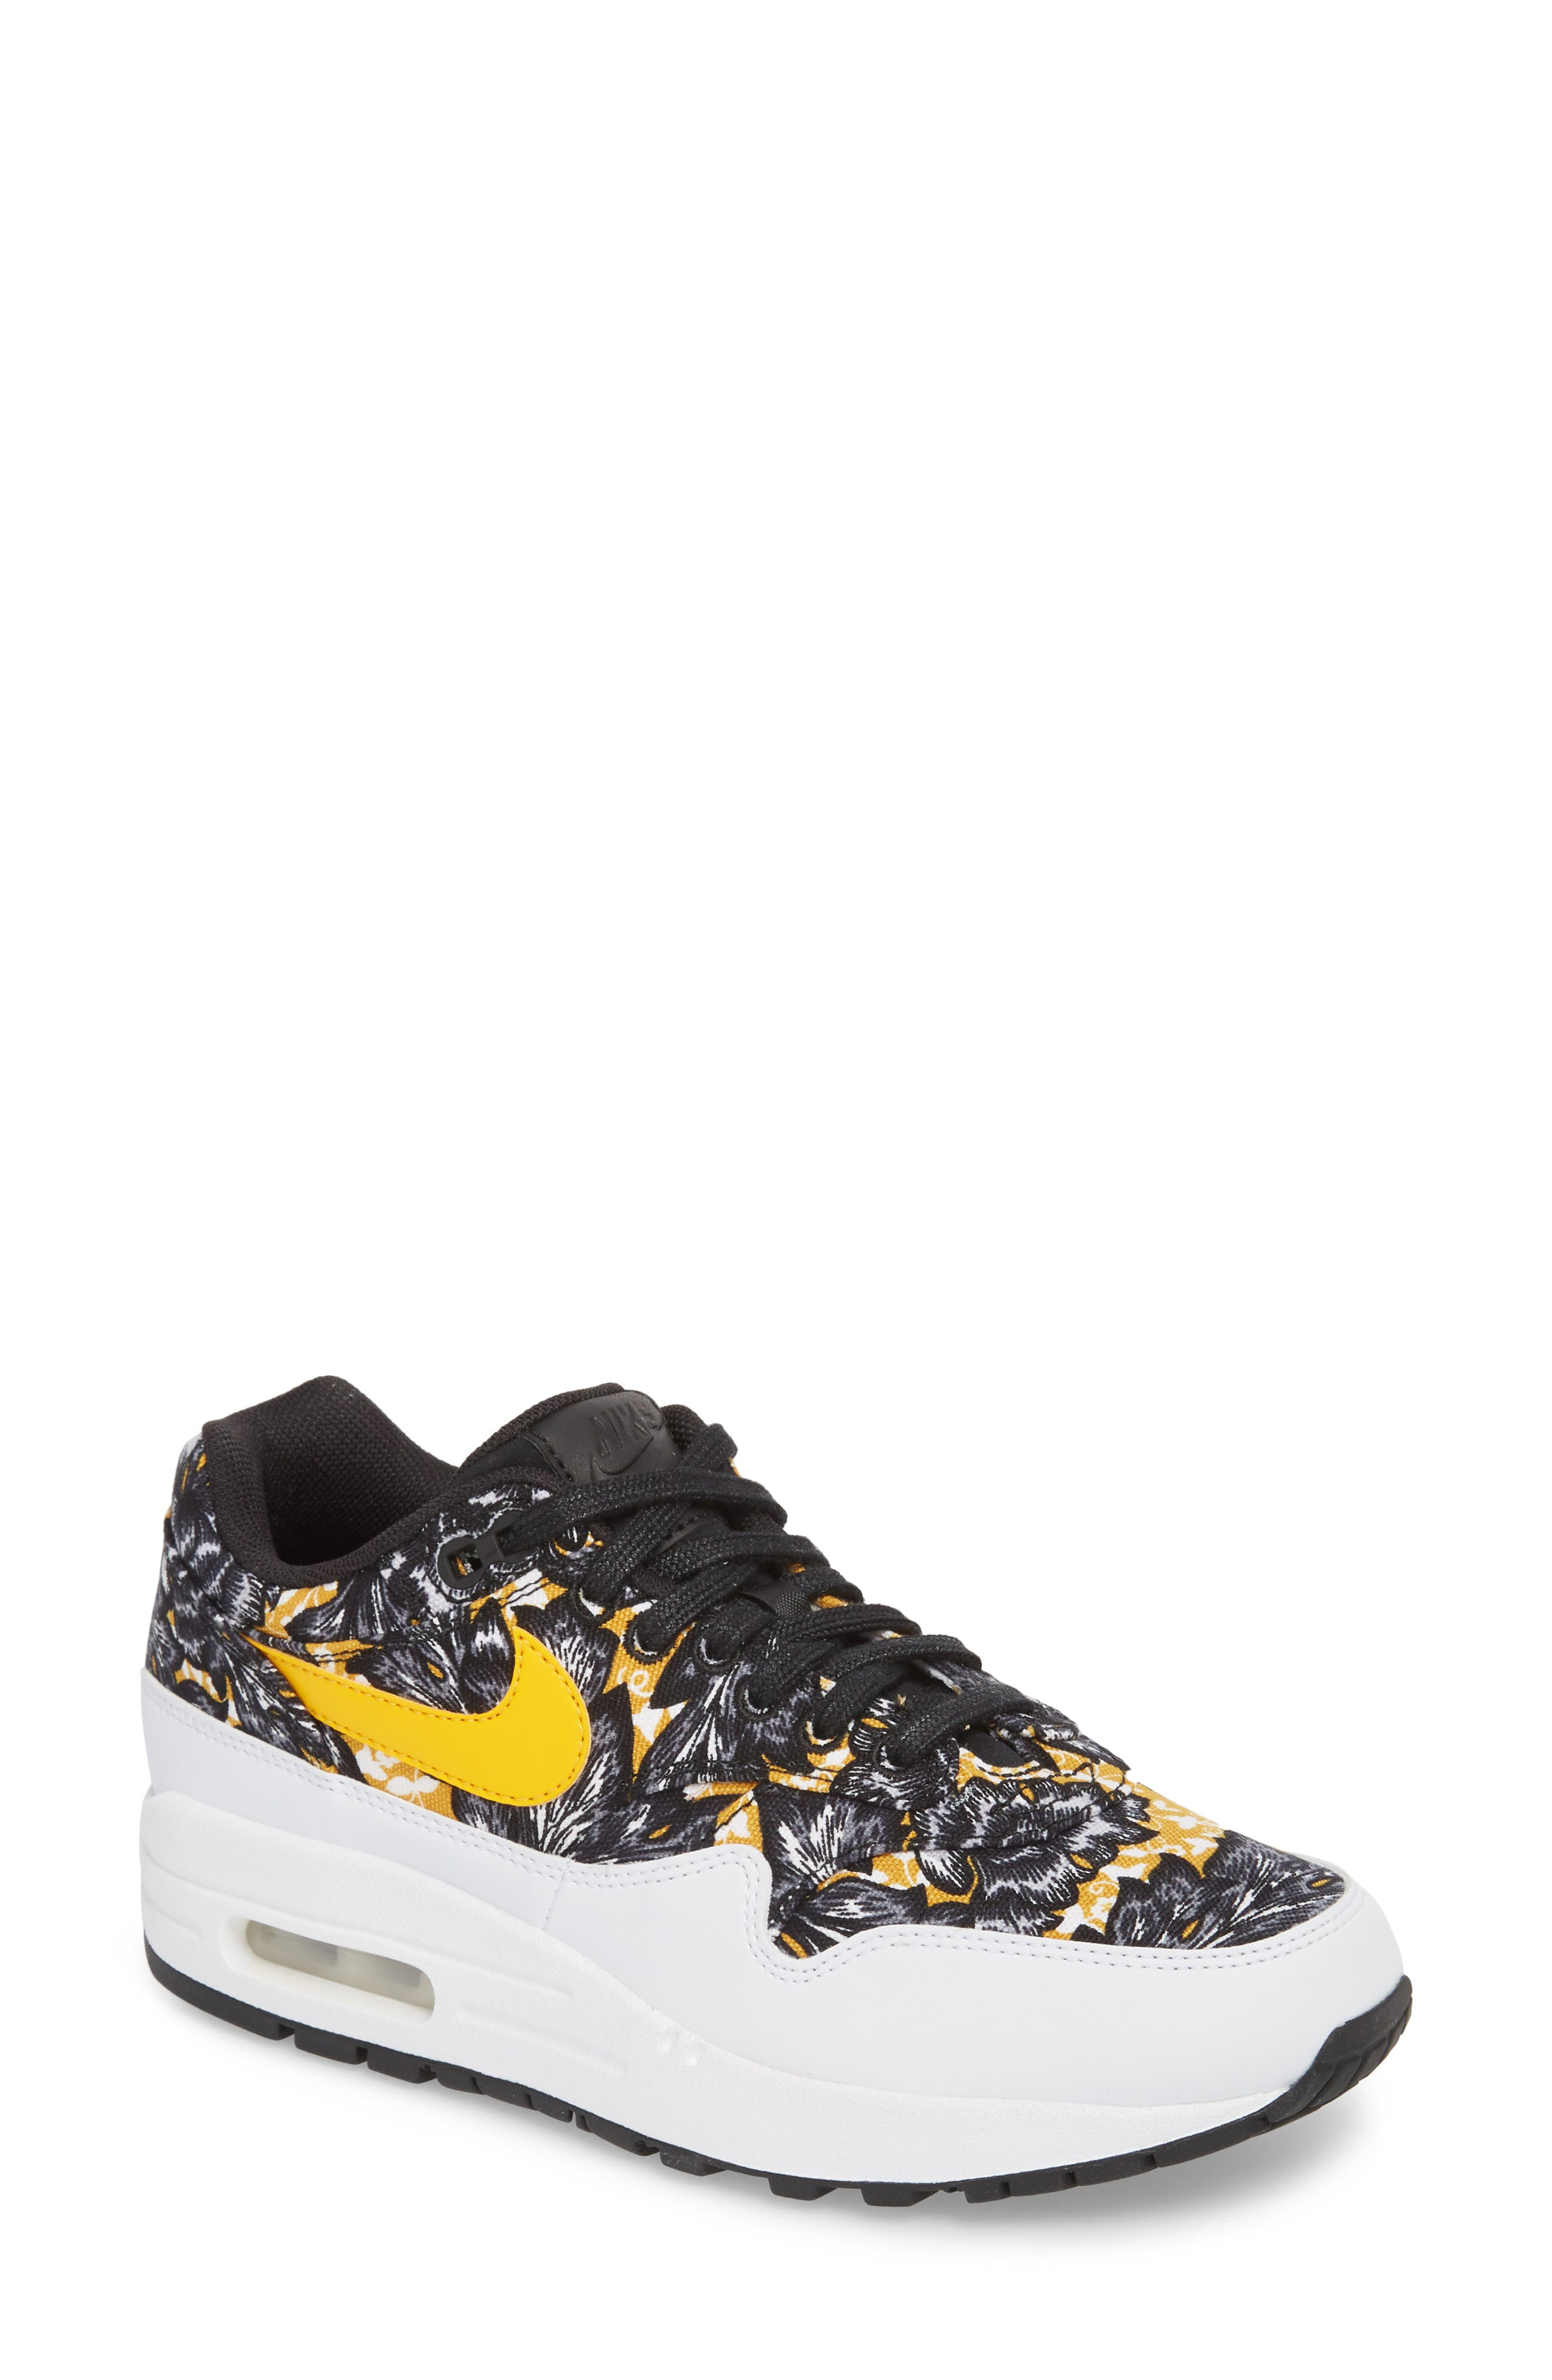 Air Max 1 QS Sneaker,                         Main,                         color, WHITE/ UNIVERSITY GOLD/ BLACK